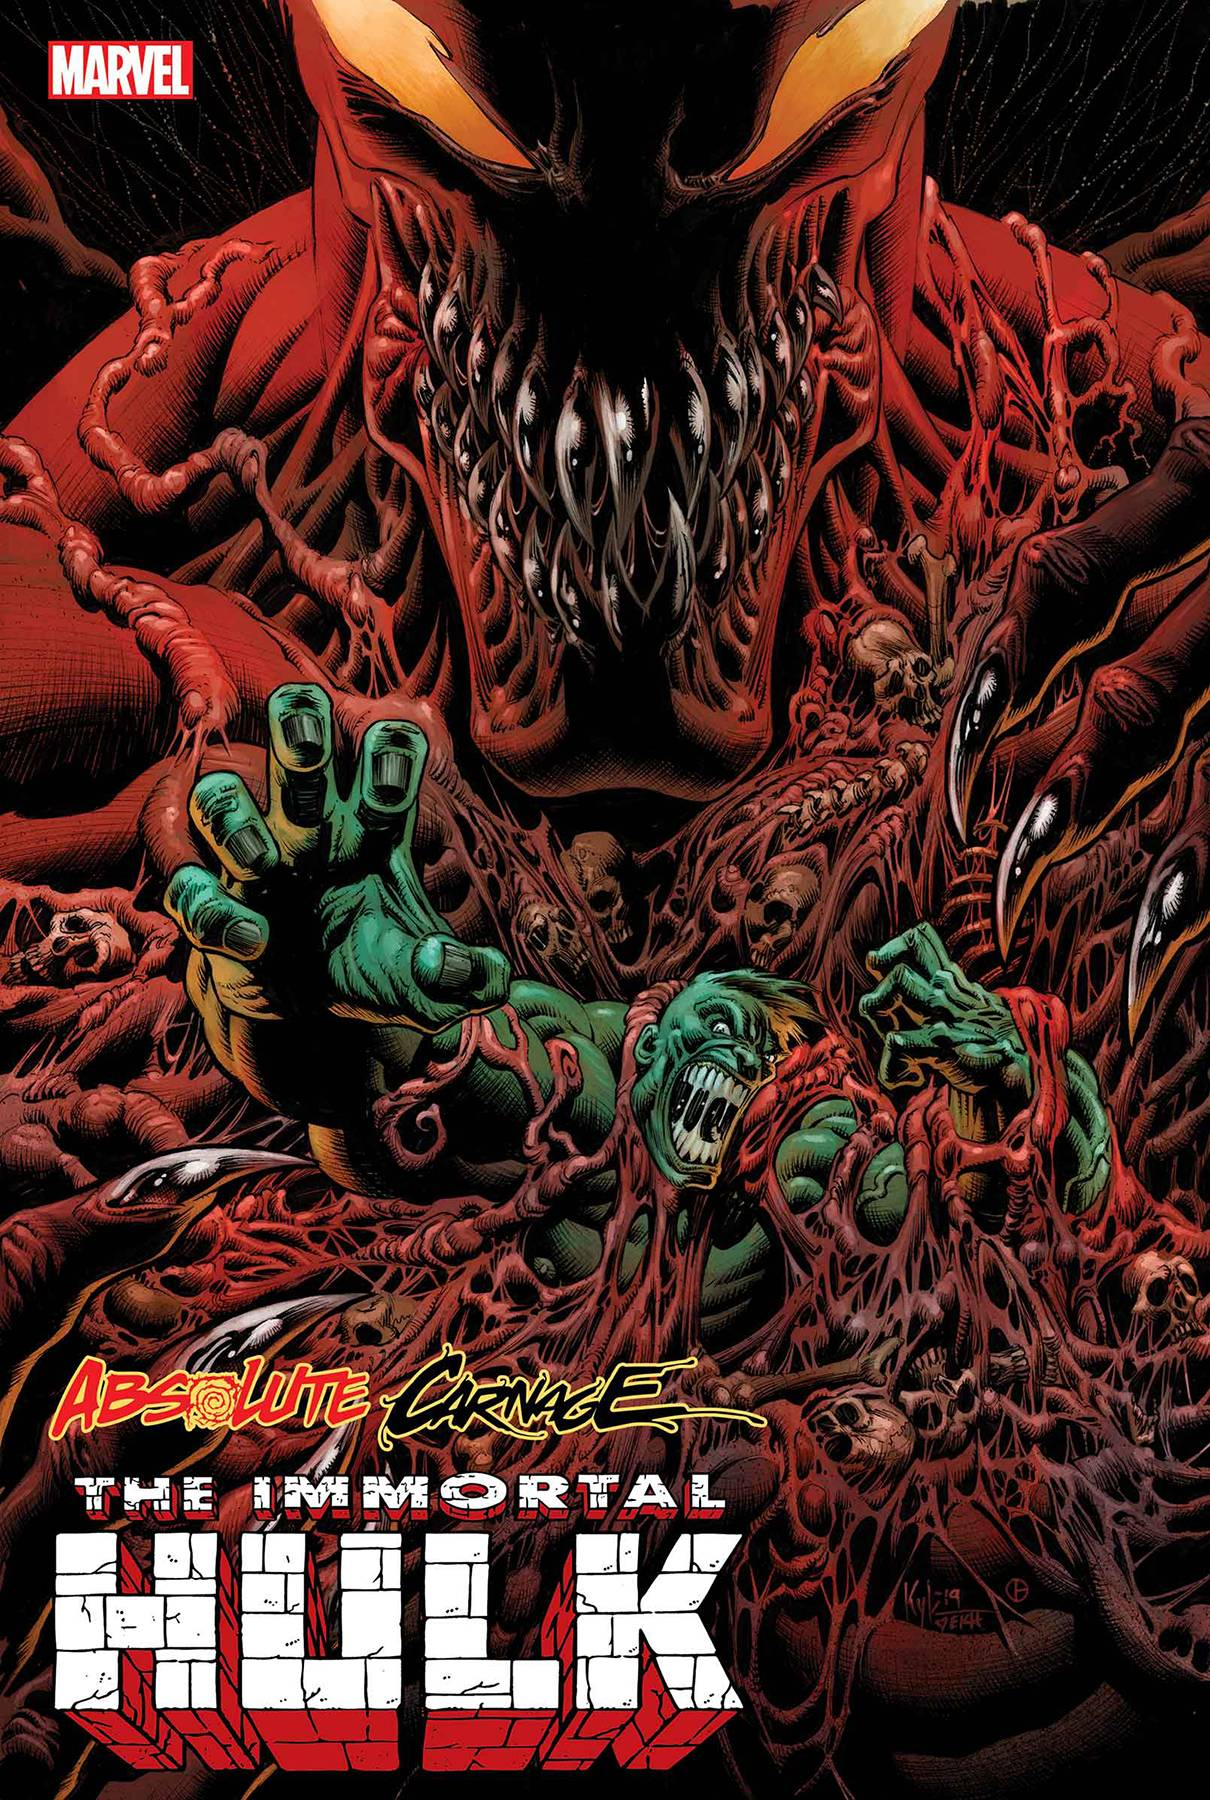 ABSOLUTE CARNAGE IMMORTAL HULK 1 AC.jpg